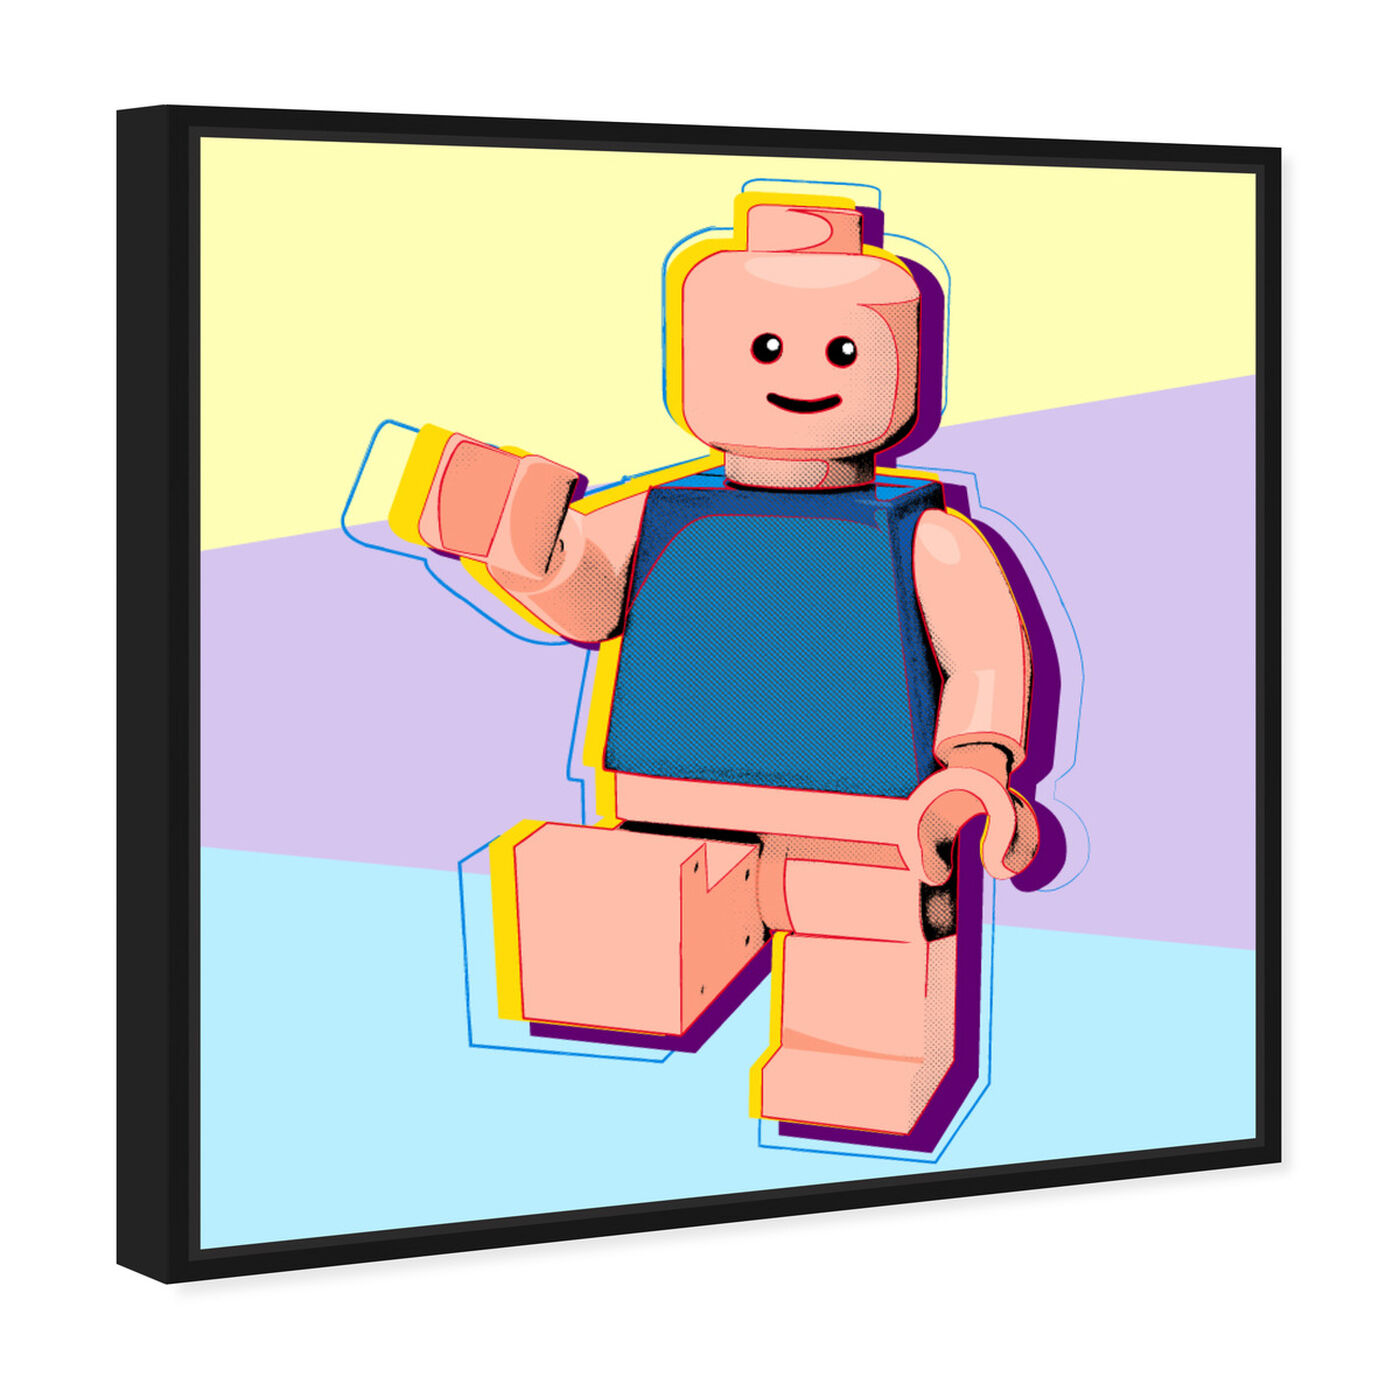 Angled view of Toy Man featuring symbols and objects and toys art.